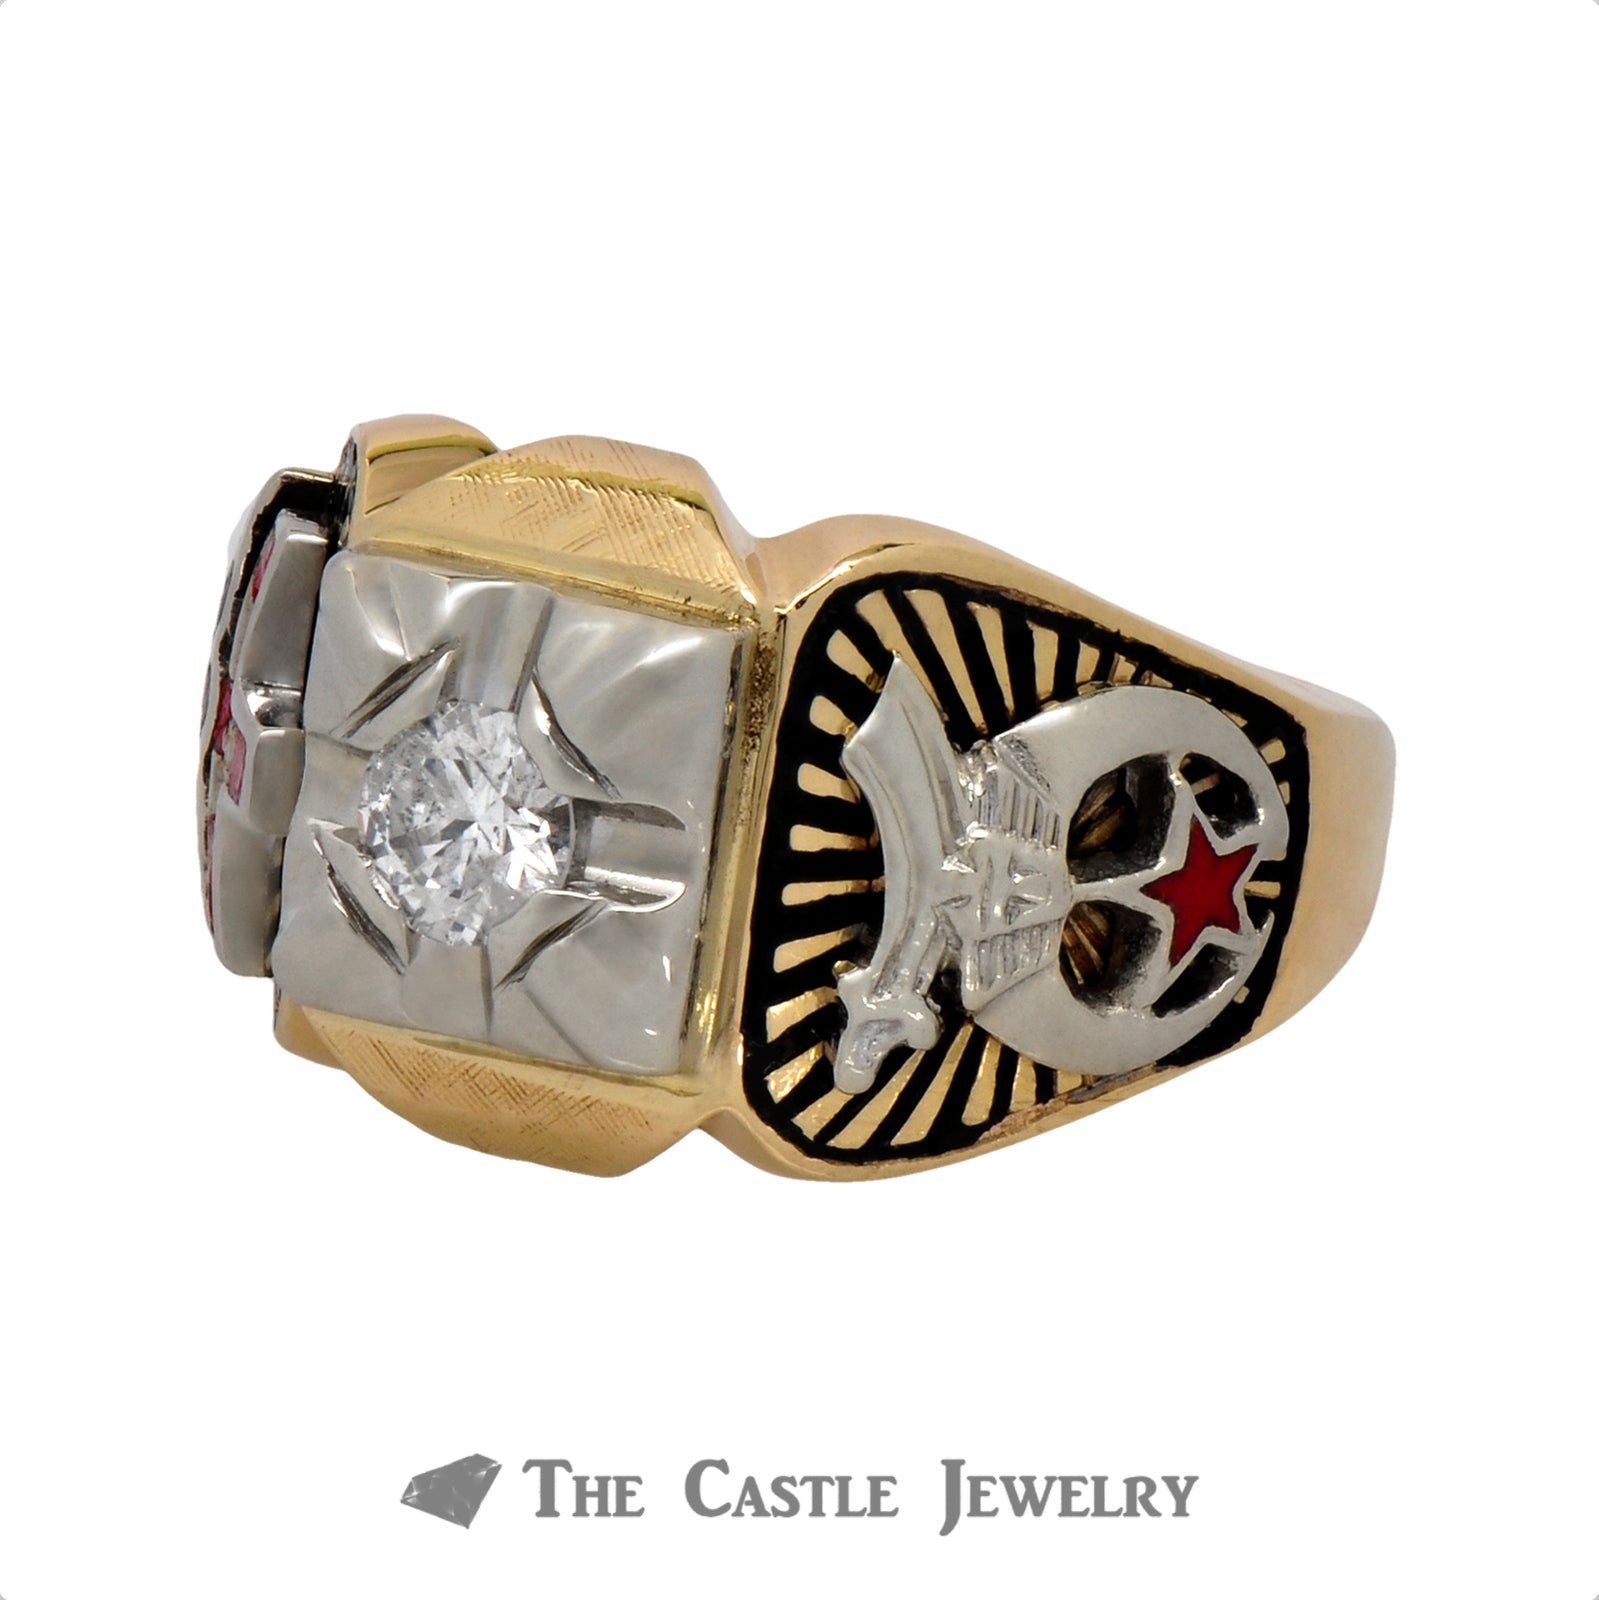 Ancient Order of the Nobles of the Mystic Shrine Ring with Diamond Solitaire-3